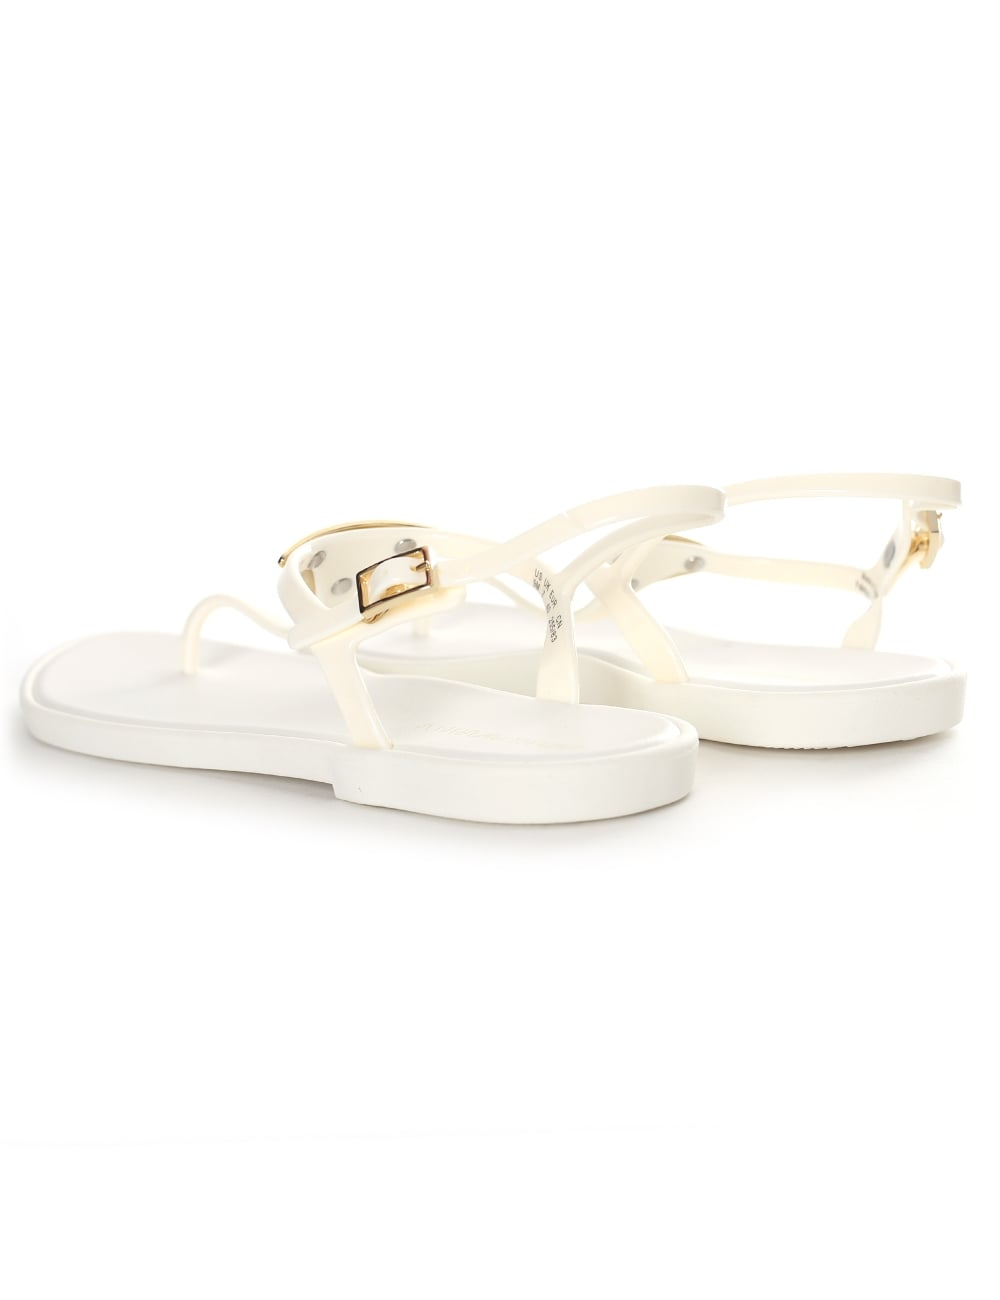 93518a3a8f52dc Emporio Armani Women s Gold Plaque Jelly Sandals